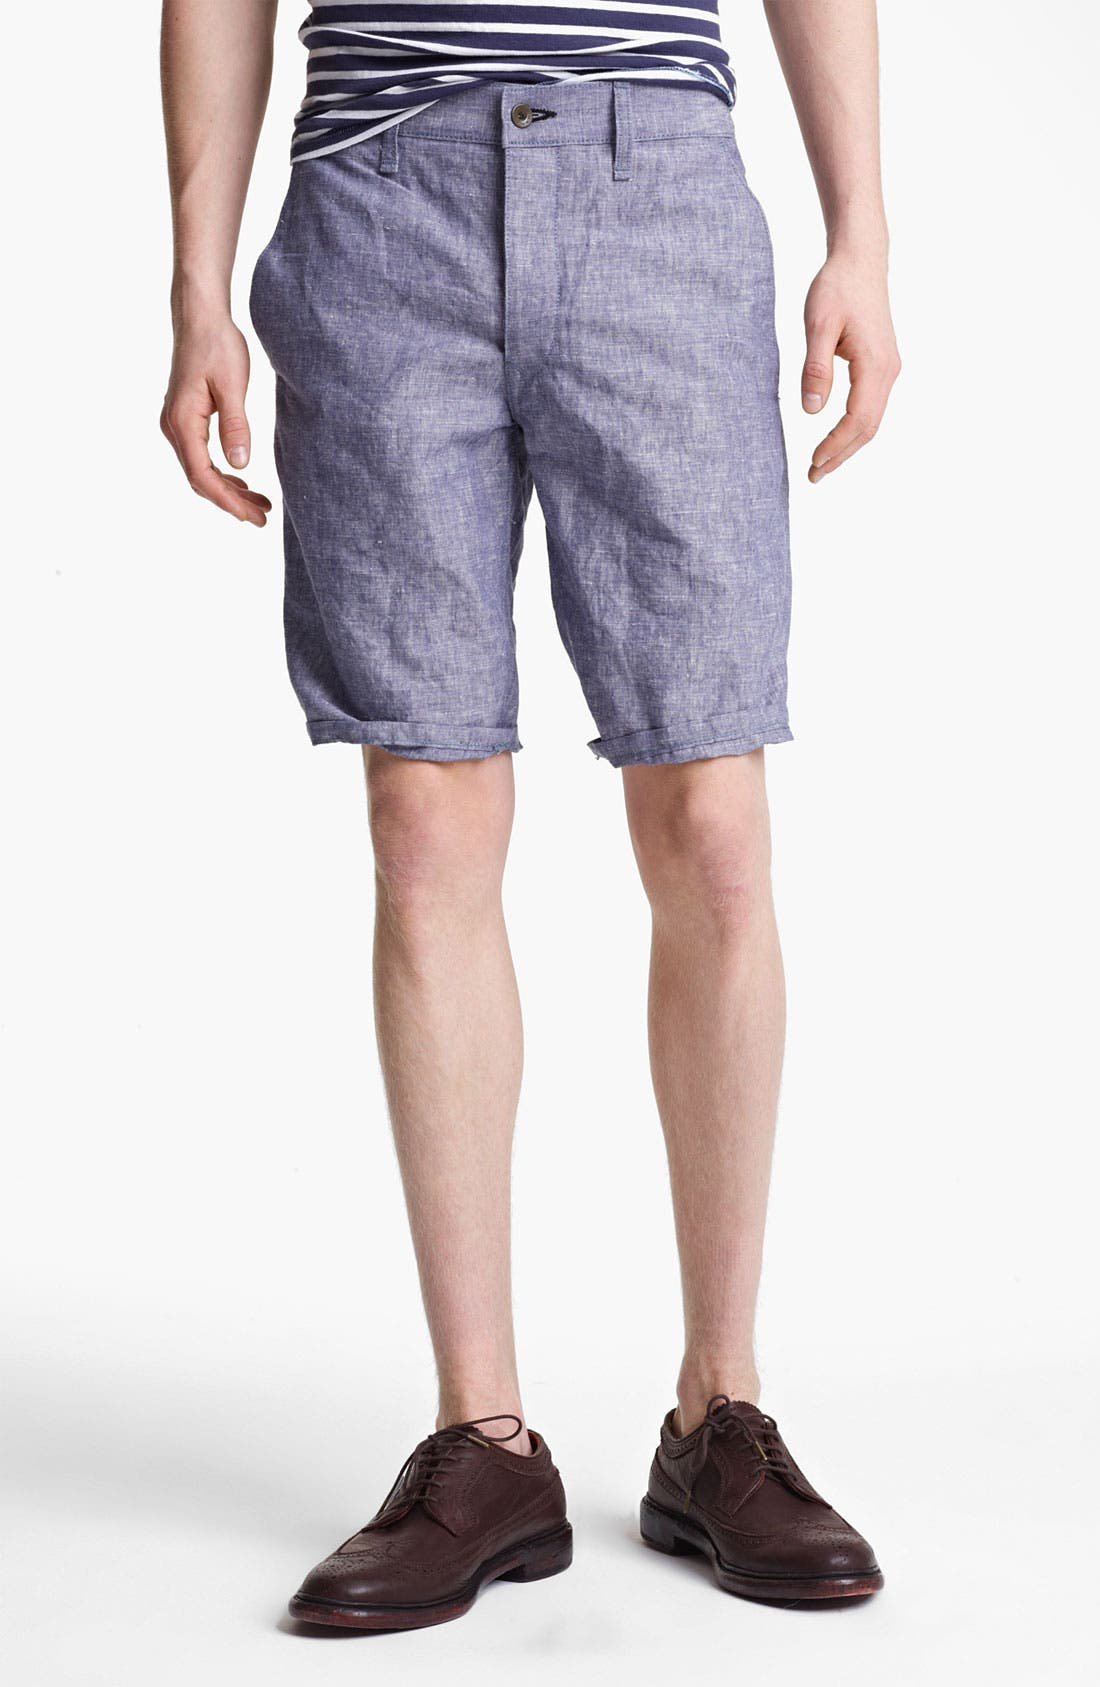 Alternate Image 1 Selected - rag & bone 'Blade' Chambray Shorts